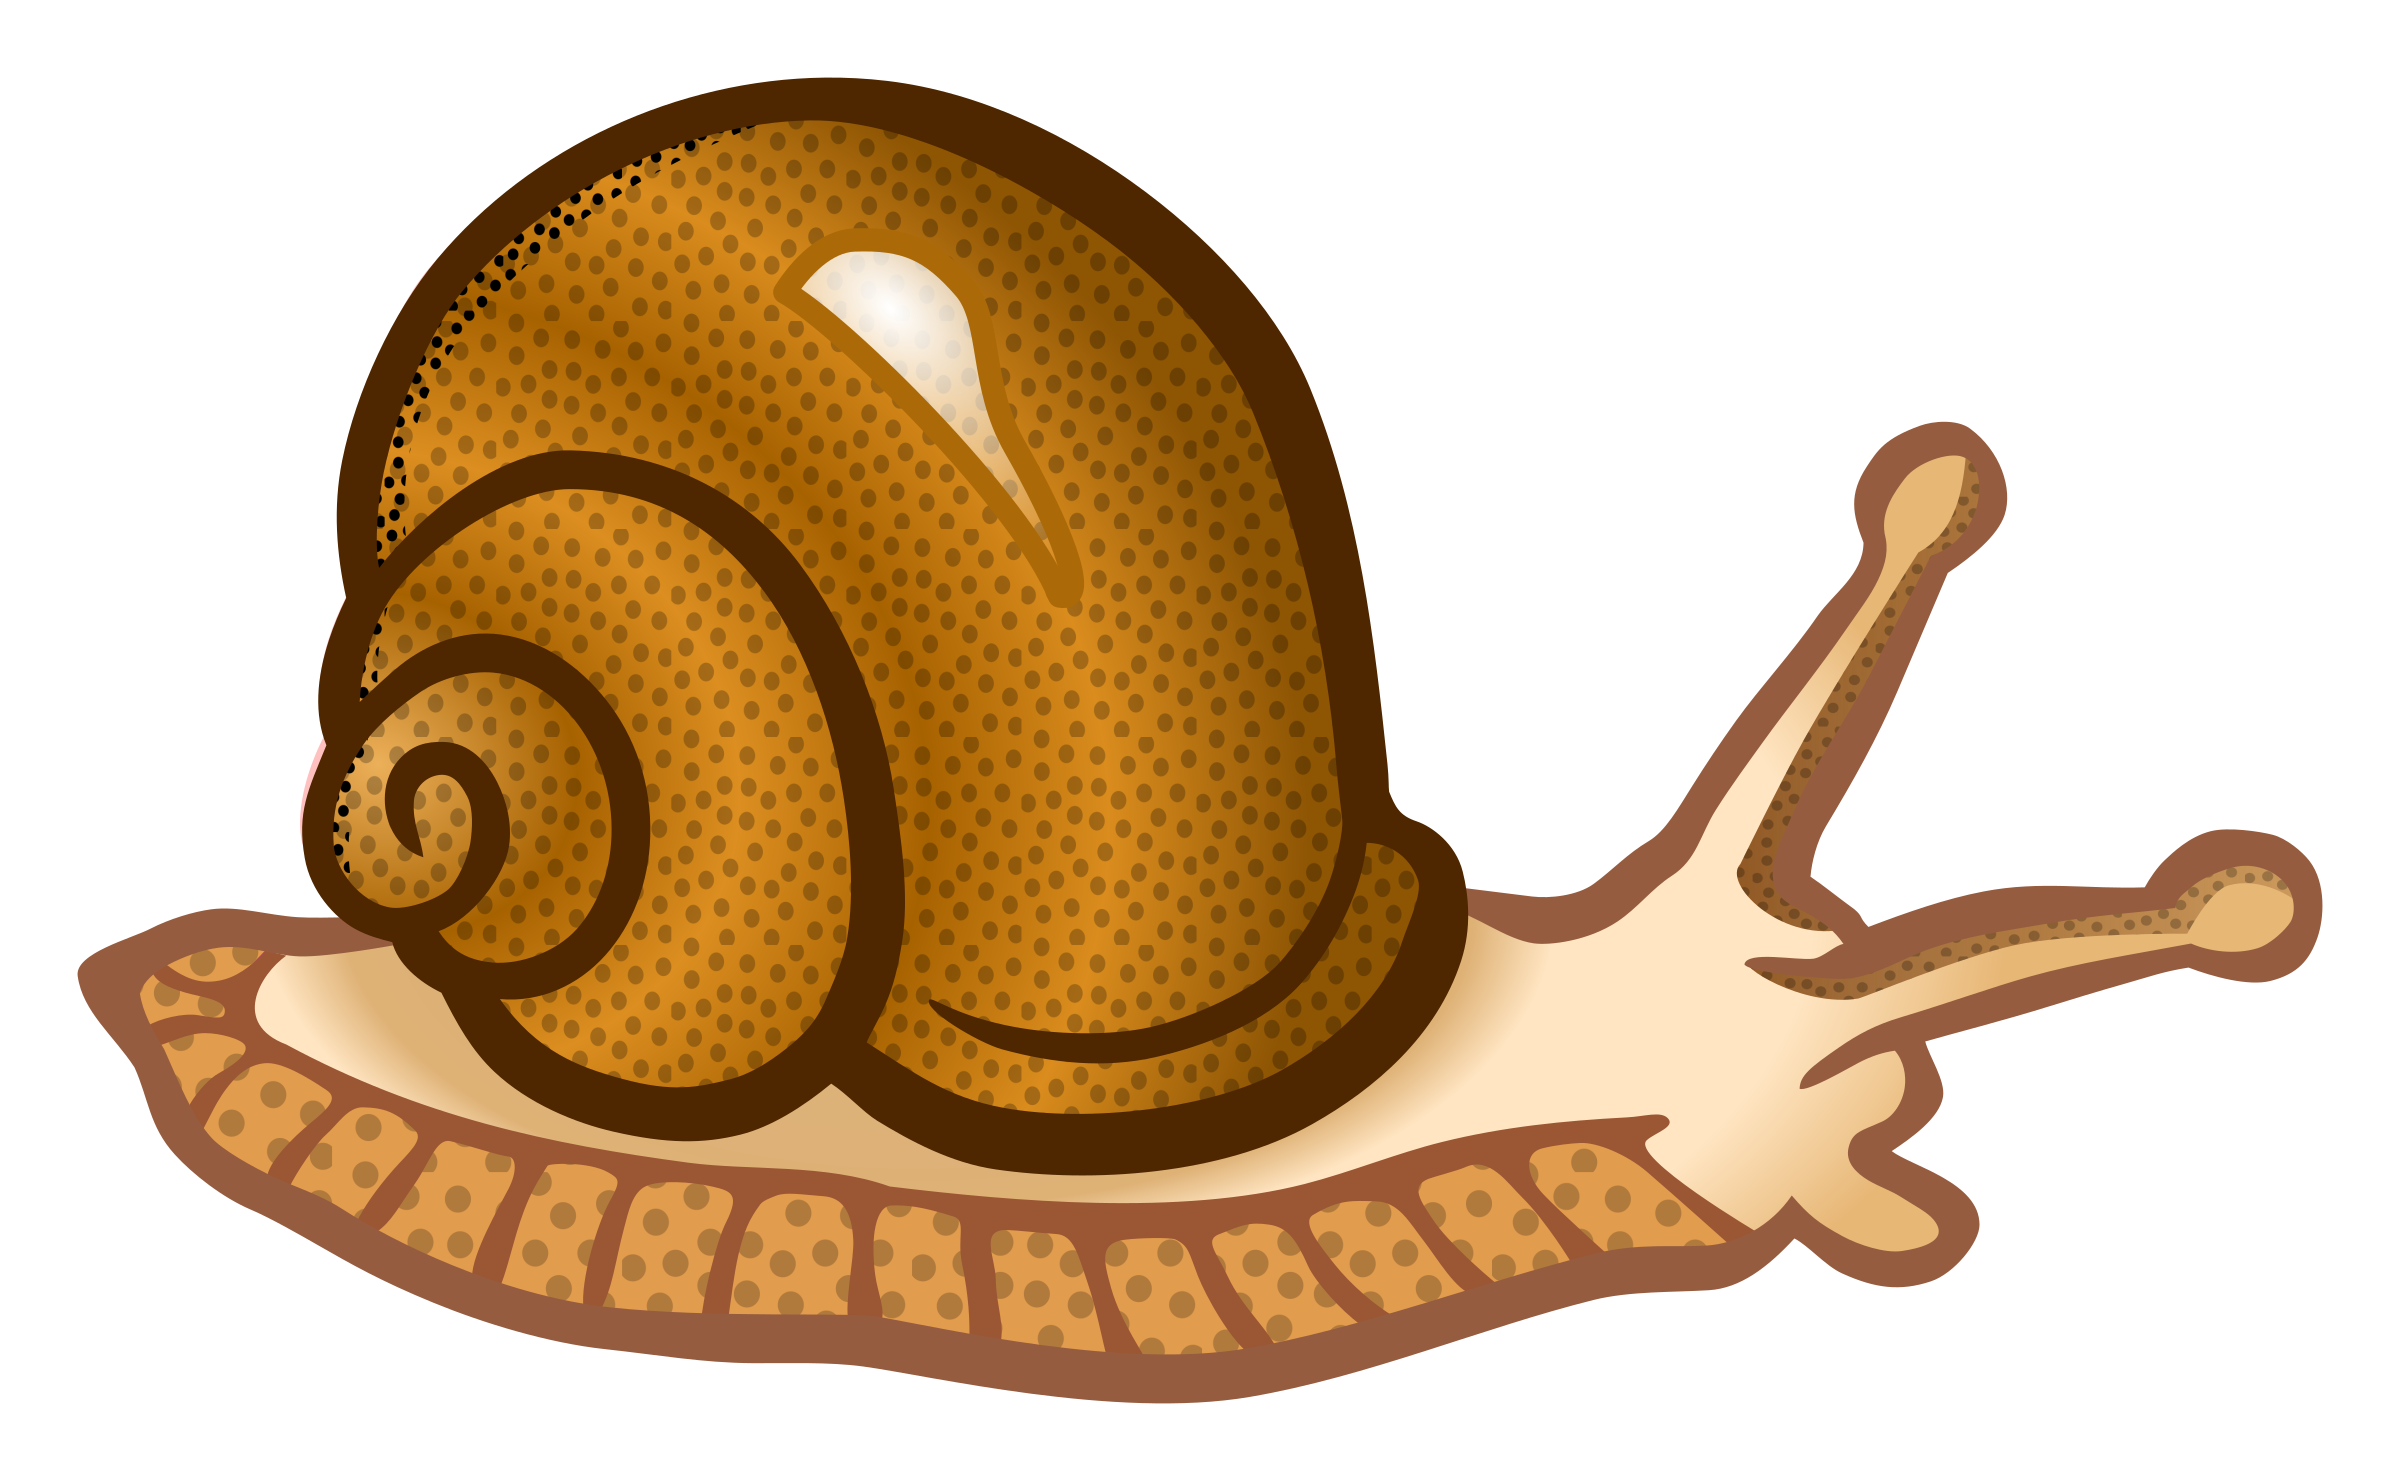 Snail clip art png. Coloured icons free and